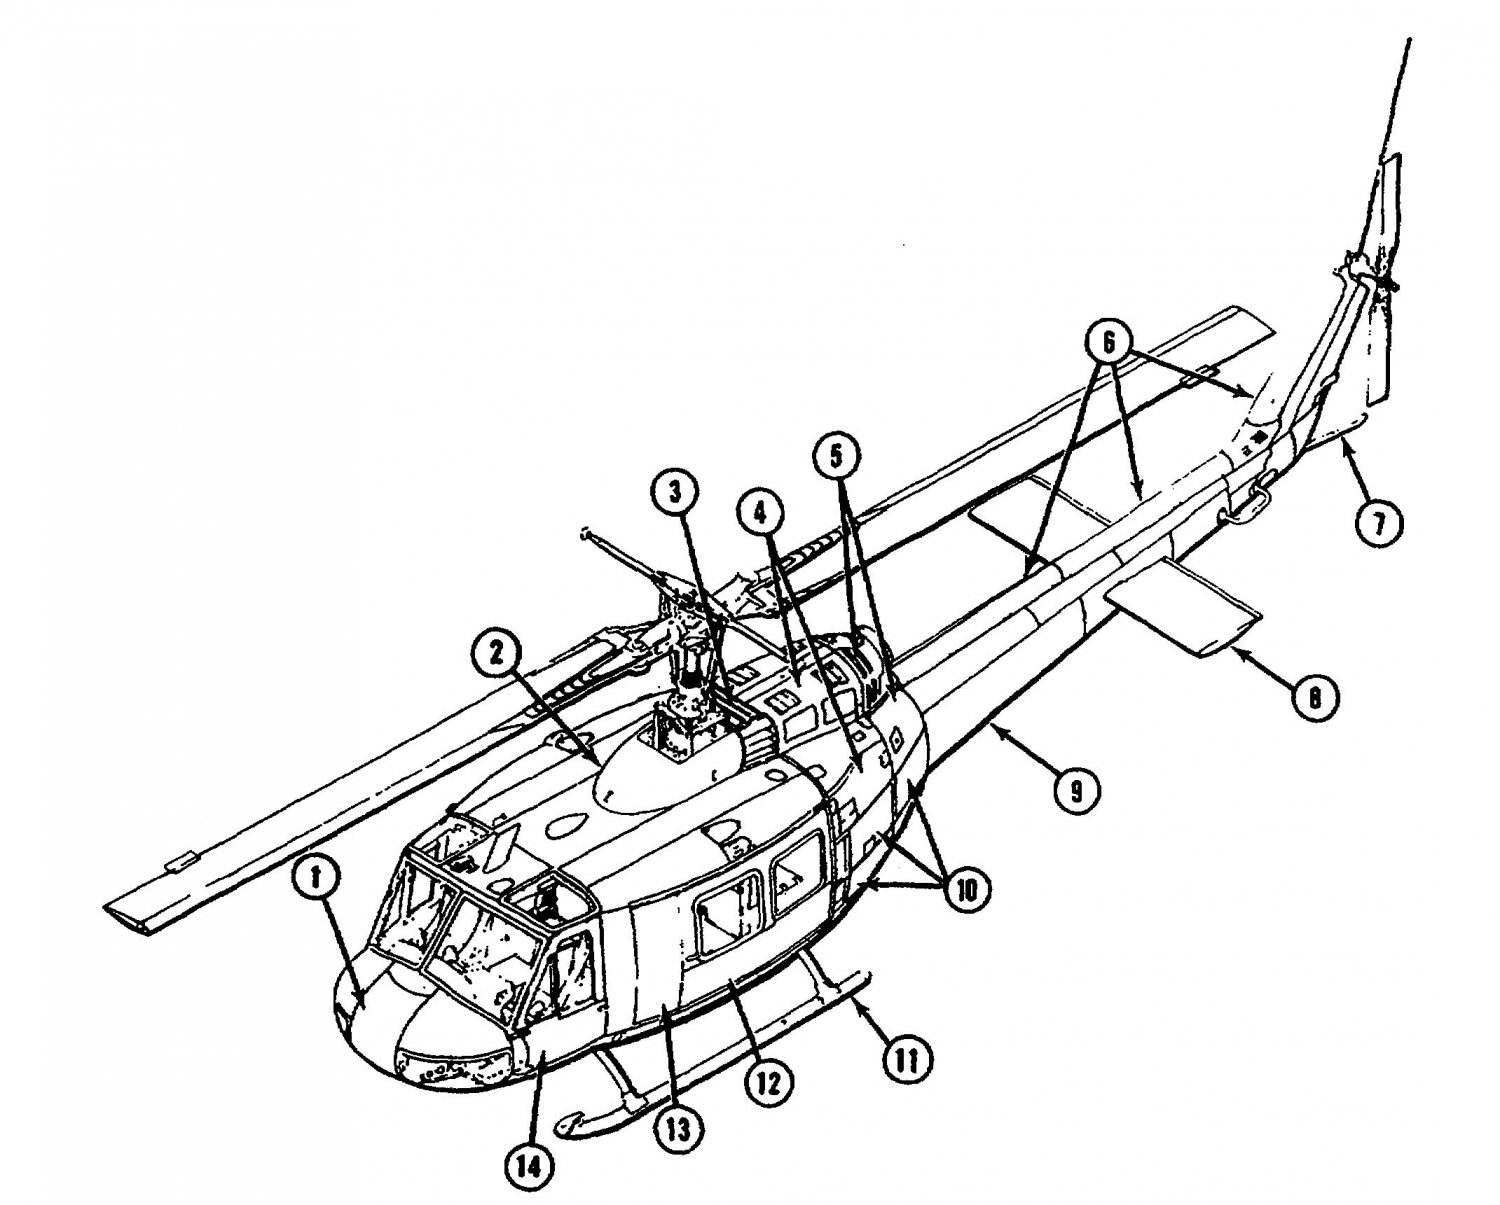 uh 1 huey helicopter 77 manual cd 8314 pages iroquois bell rh ecrater com uh-1 huey flight manual dcs uh-1 manual pdf